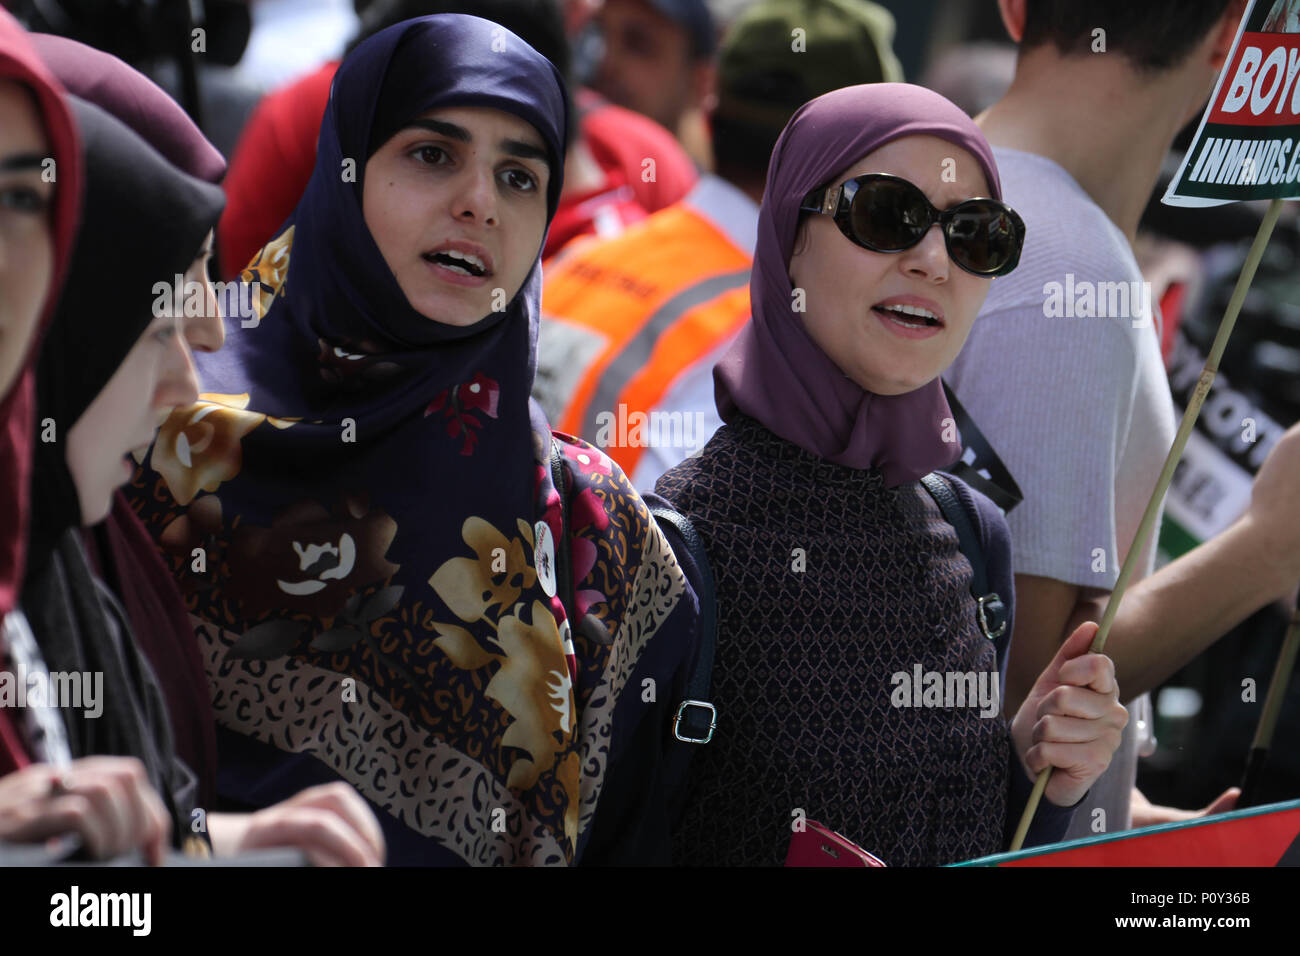 London, UK - 10 June 2018: Protestors take part  in a demonstration outside the Saudi Arabia Embassy for Al Quds Day on 10 June 2018. The annual event held on the last Friday of Ramadan that was initiated in 1979 to express support for the Palestinians and oppose Zionism and Israel. Credit: David Mbiyu Credit: david mbiyu/Alamy Live News - Stock Image